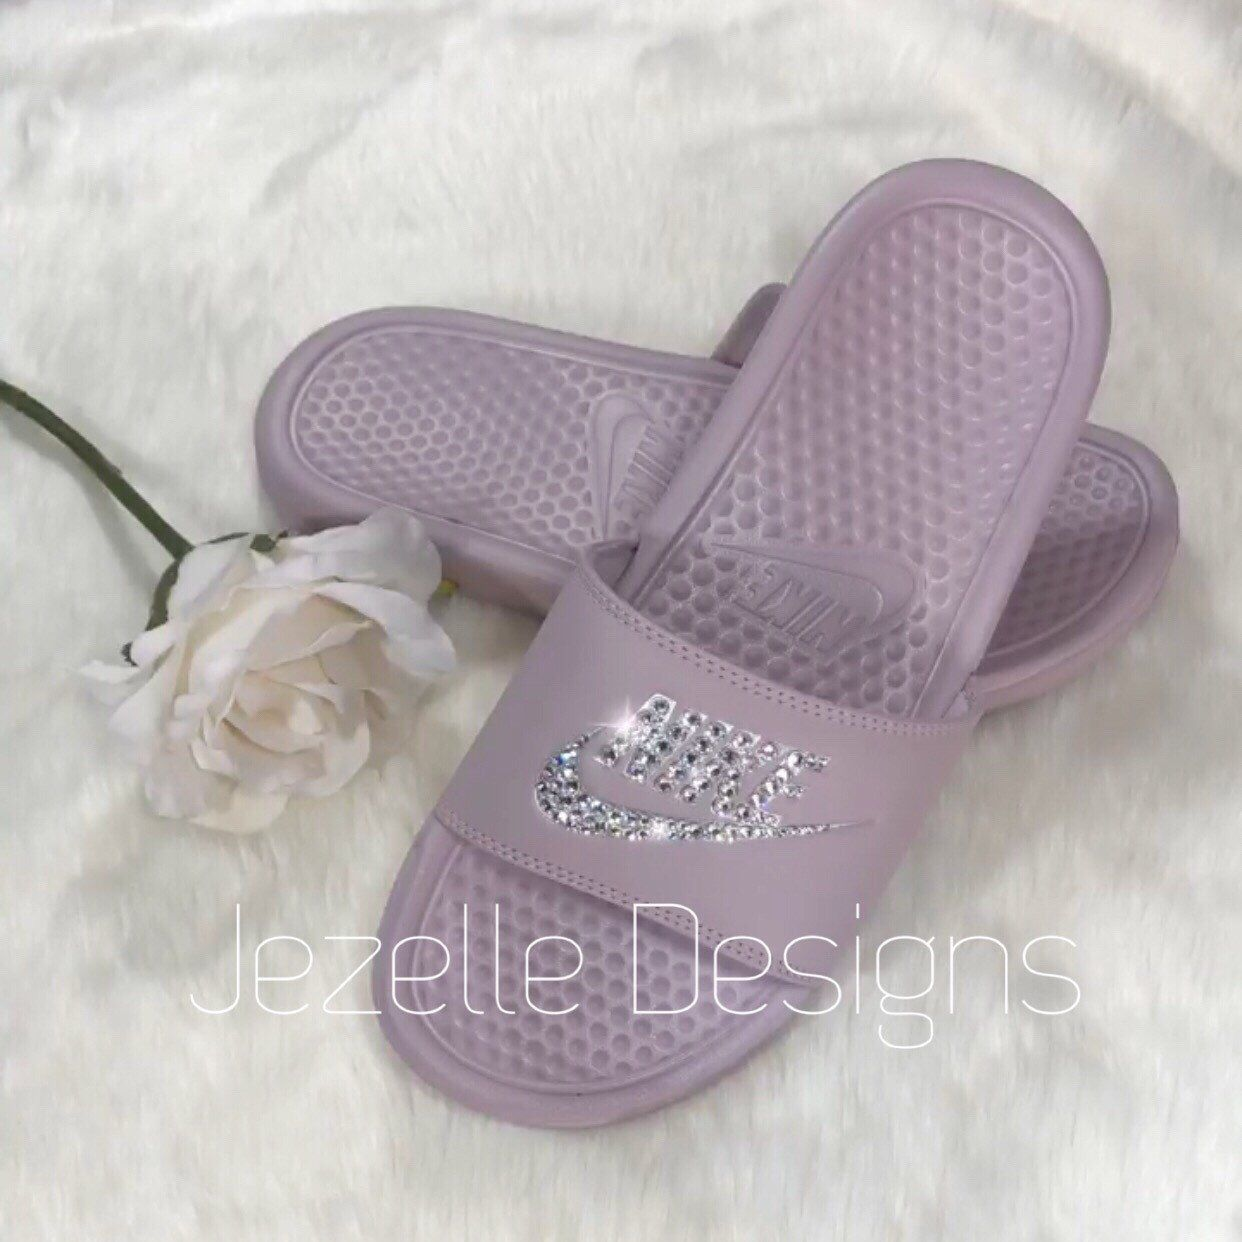 1e7d1586125f Swarovski Crystal Custom Hand Jeweled NIKE Slides by Jezelle Designs. 💎  Get yours in time for spring... it s just around the corner!